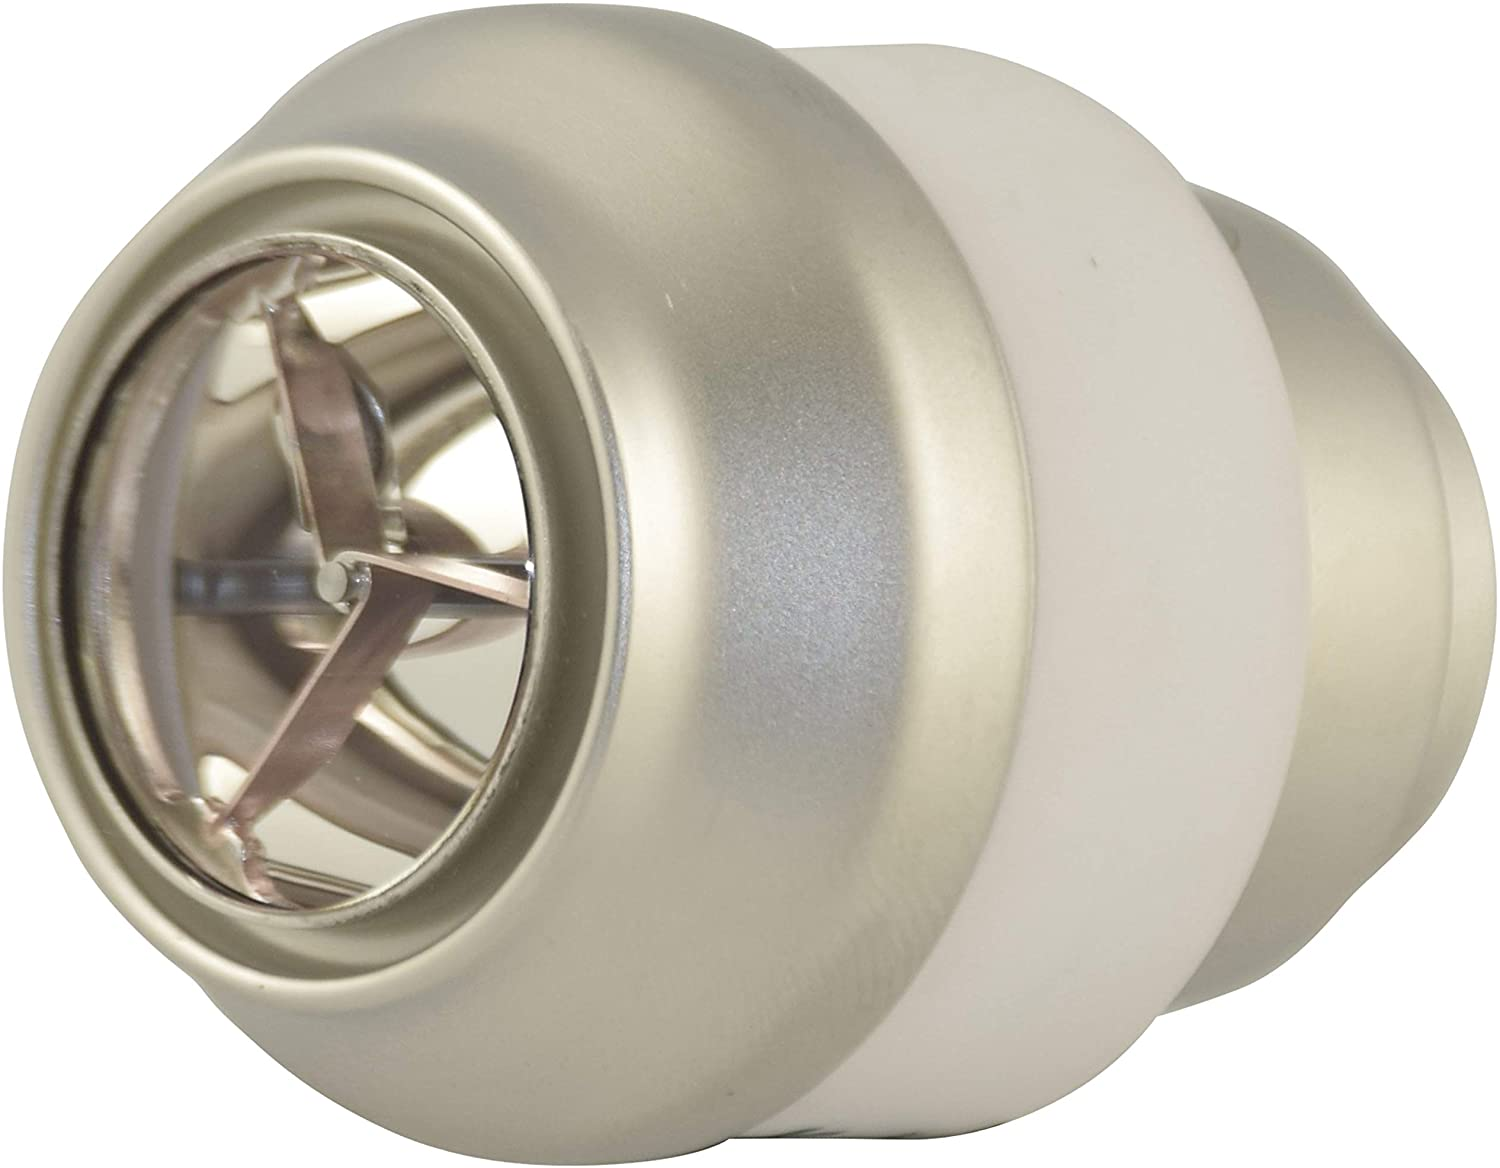 Replacement for Sunoptics Cl1407 Lamp & Housing Light Bulb by Technical Precision